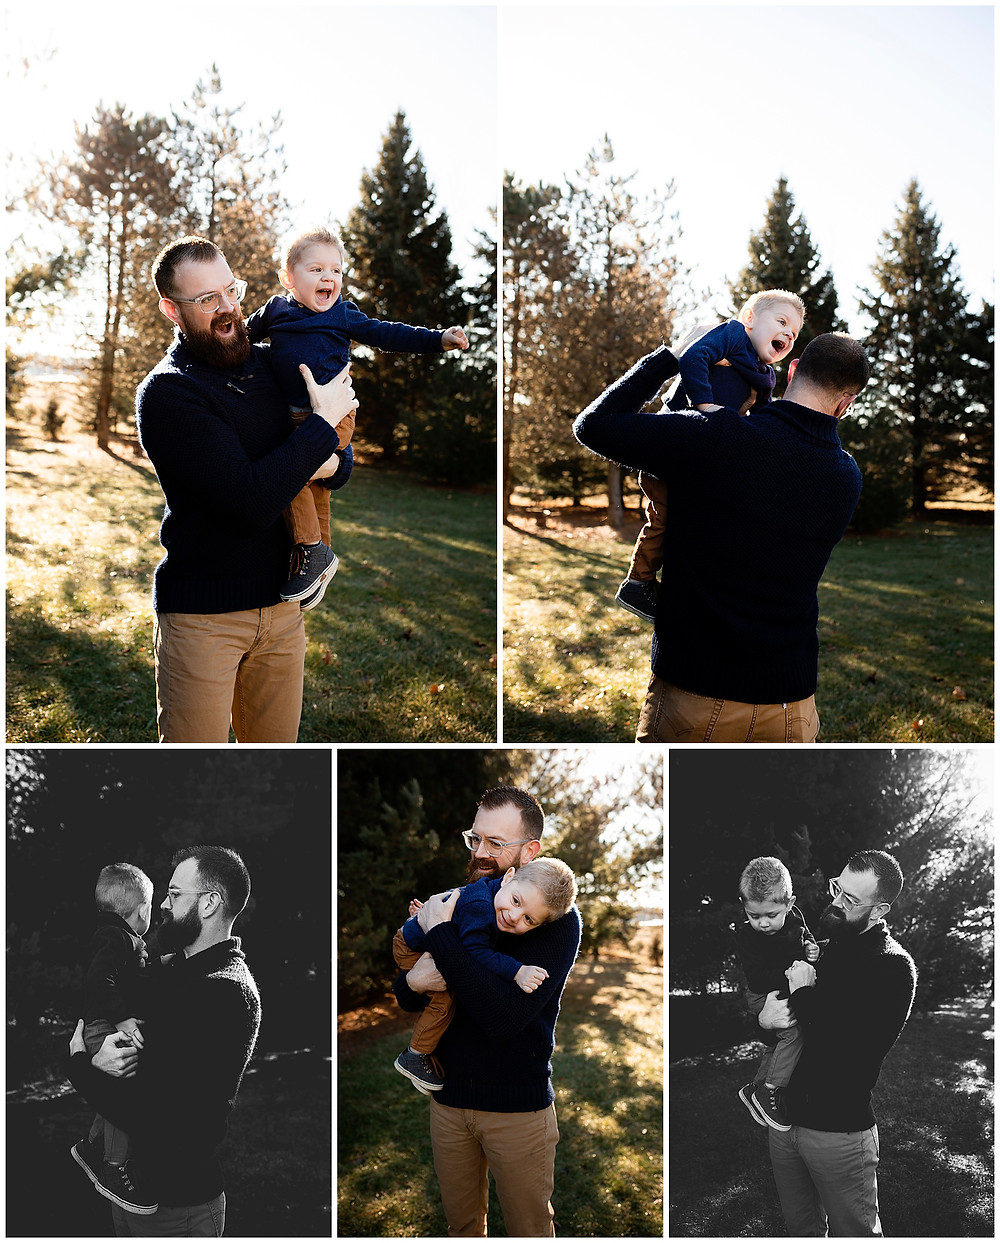 family pictures, photography, wisconsin photography, family portraits, dad and son